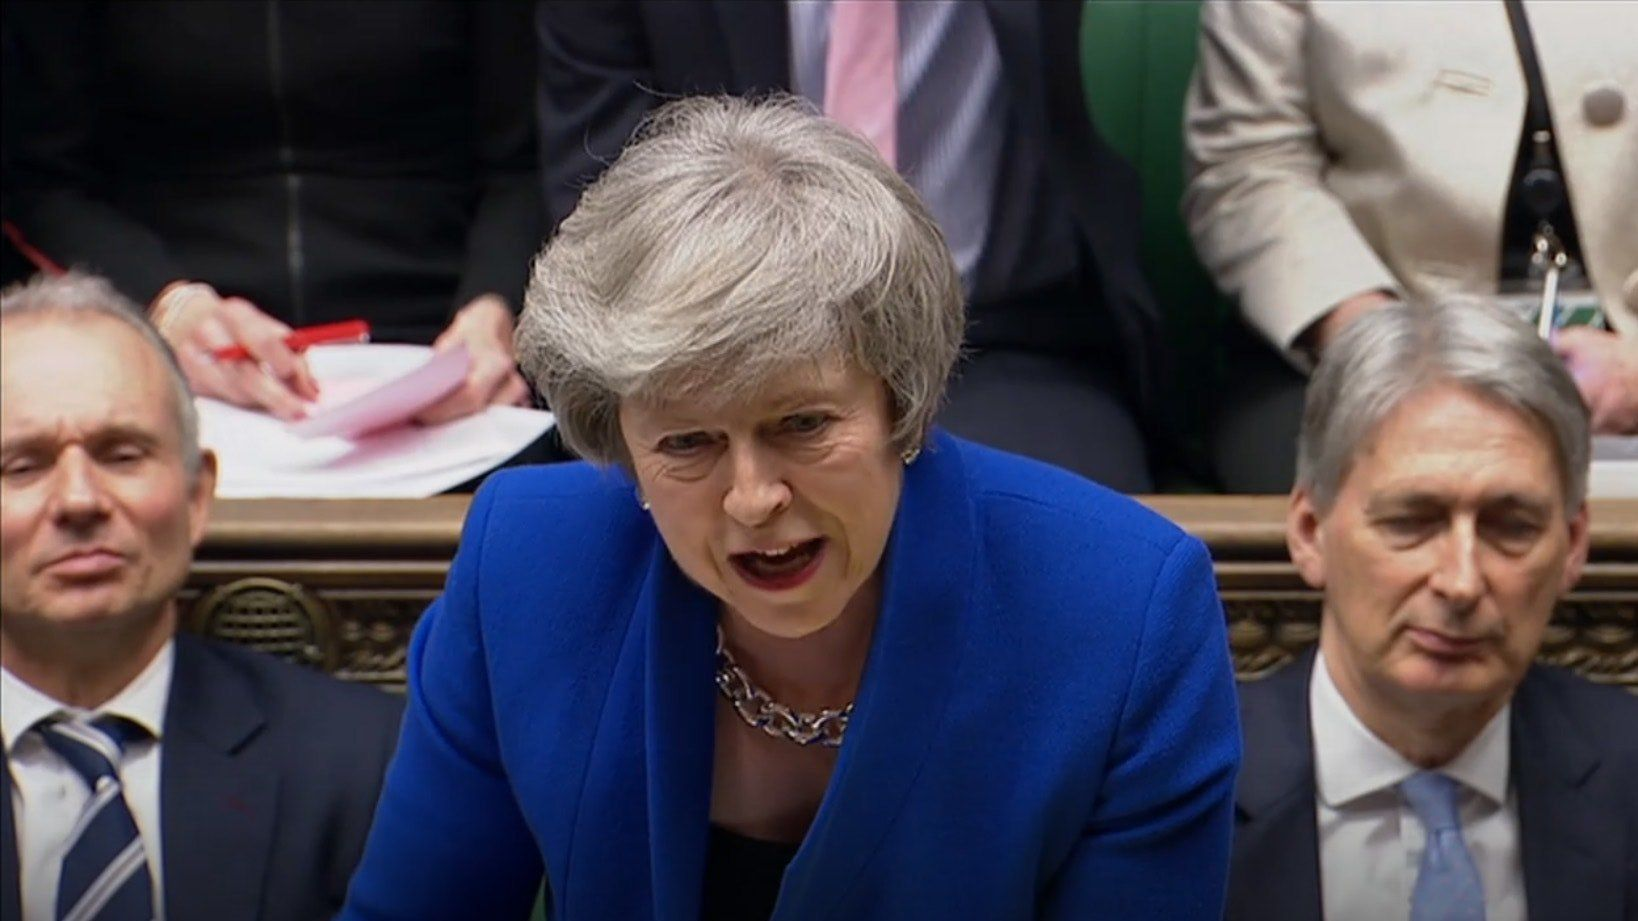 PM Theresa May battles to keep Brexit alive